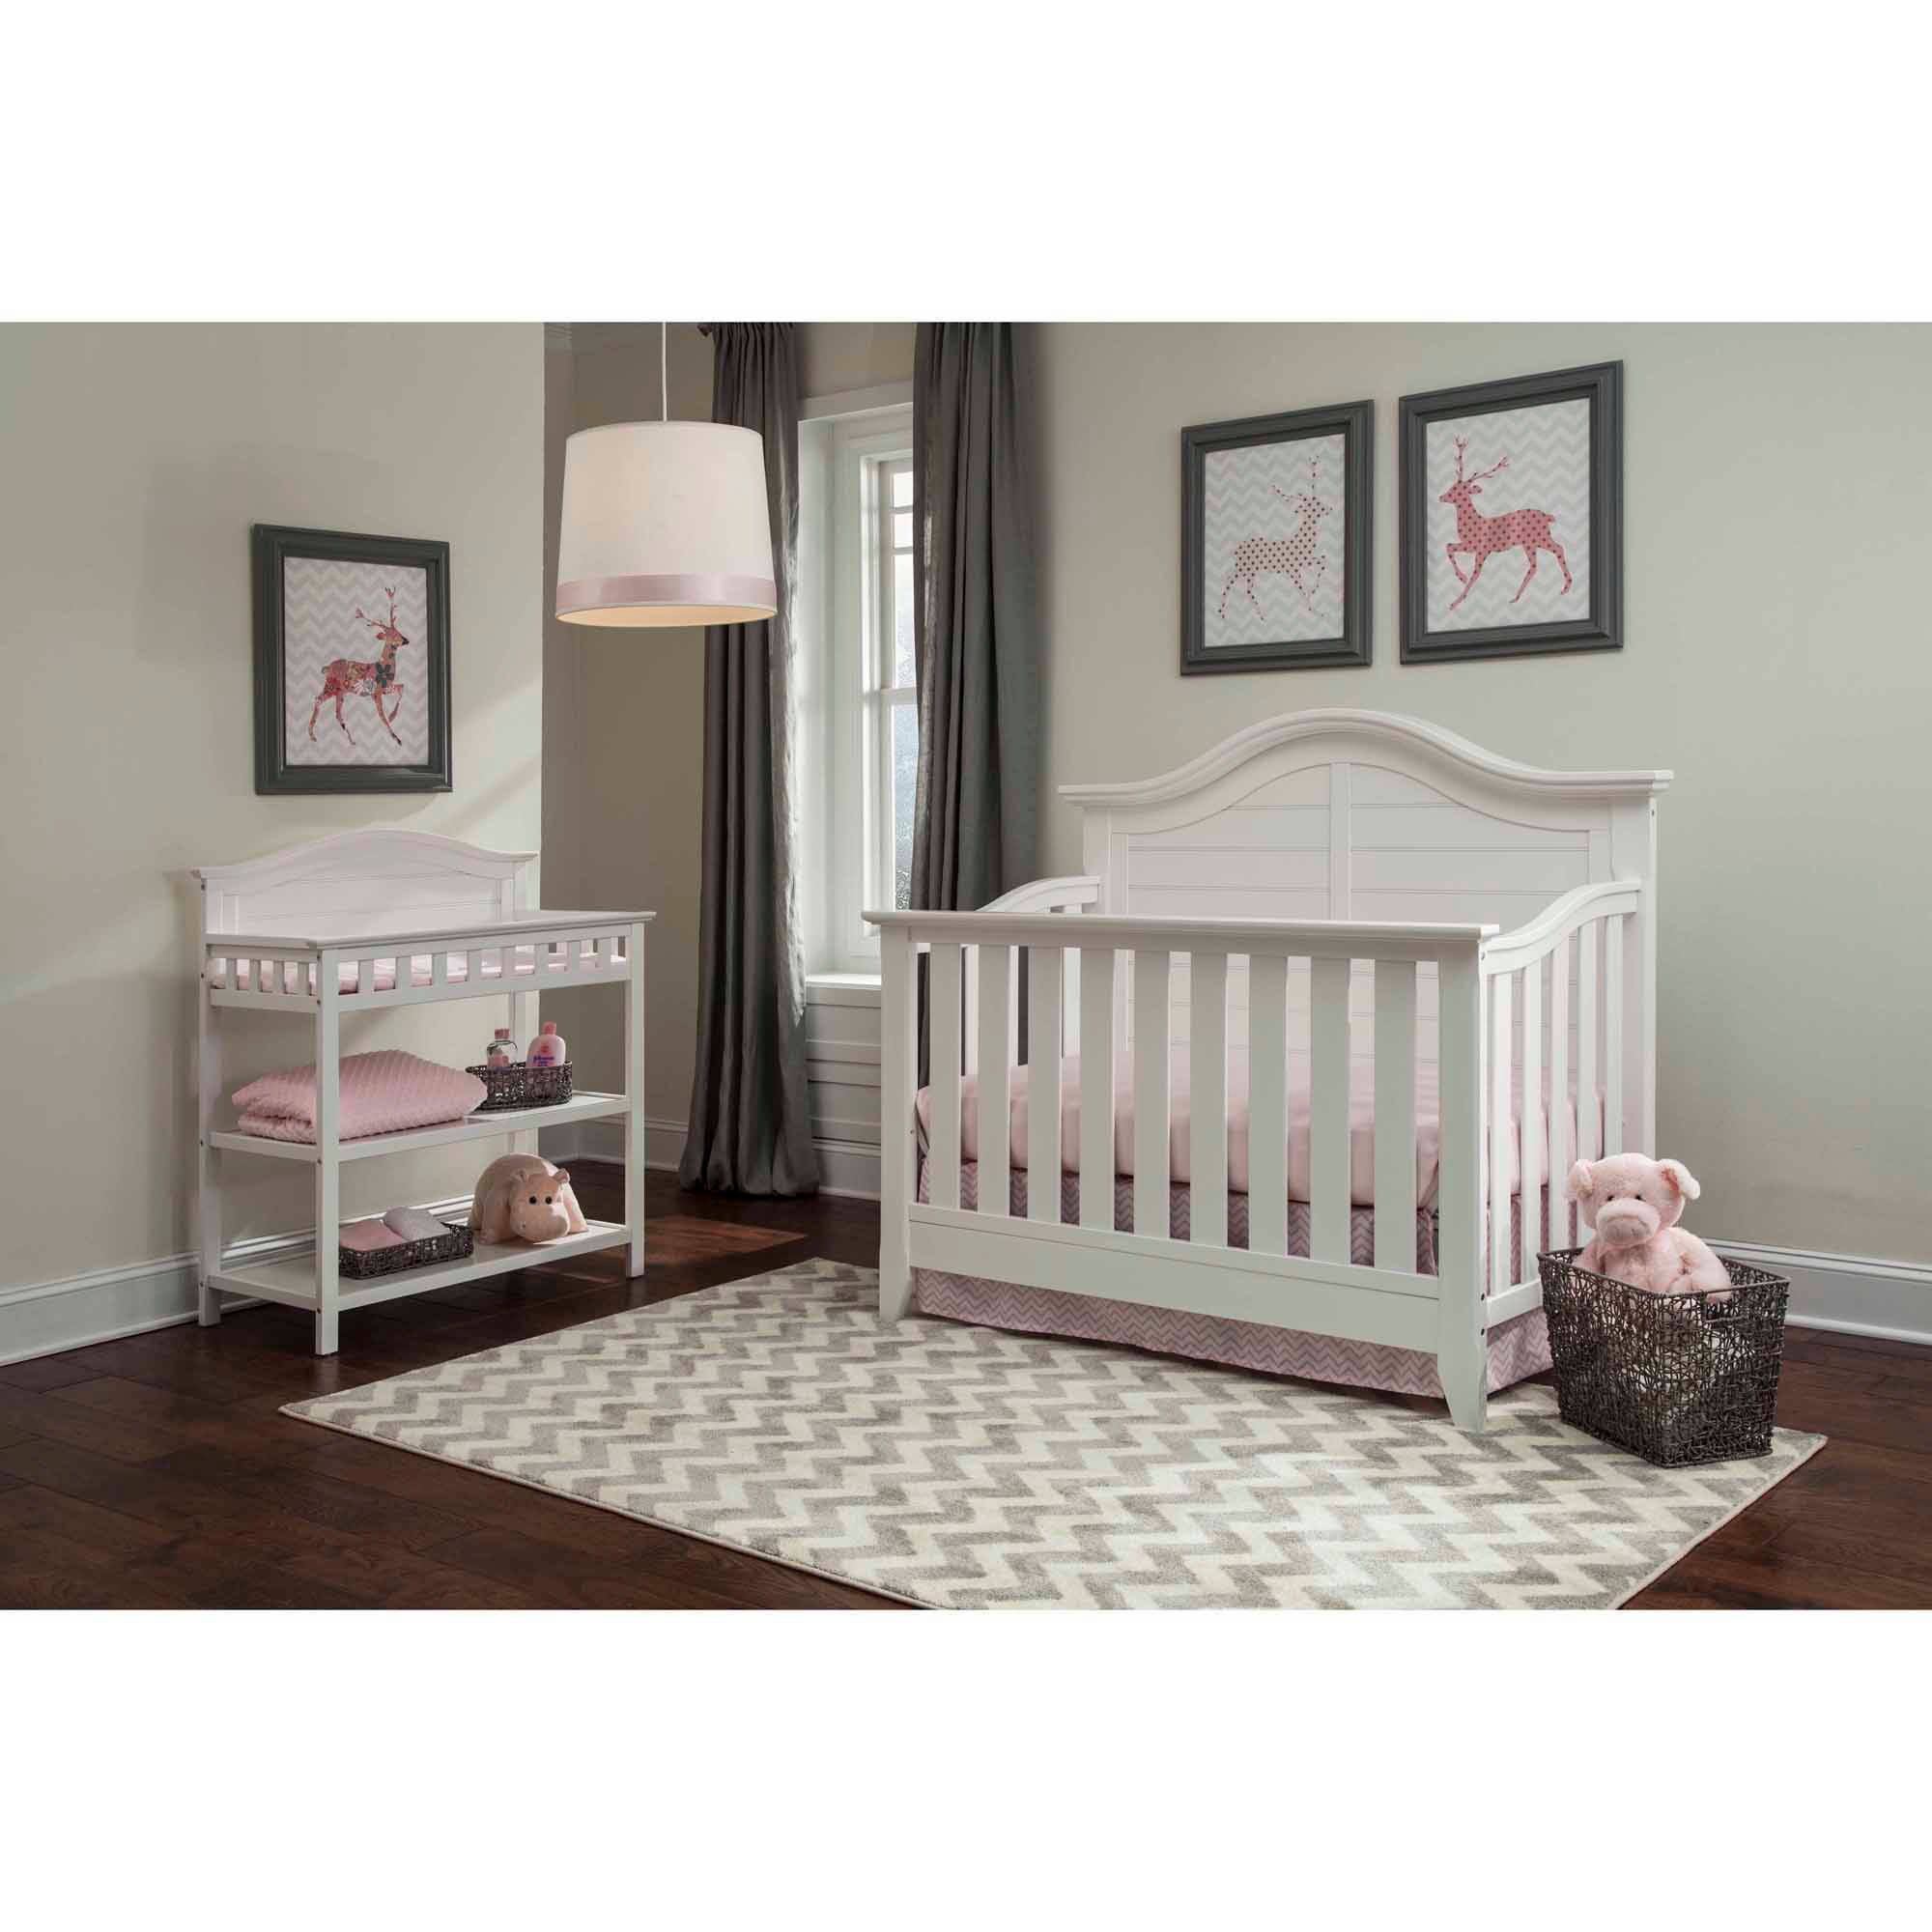 Thomasville Kids Southern Dunes Lifestyle 3-in-1 Fixed-Side Convertible Crib